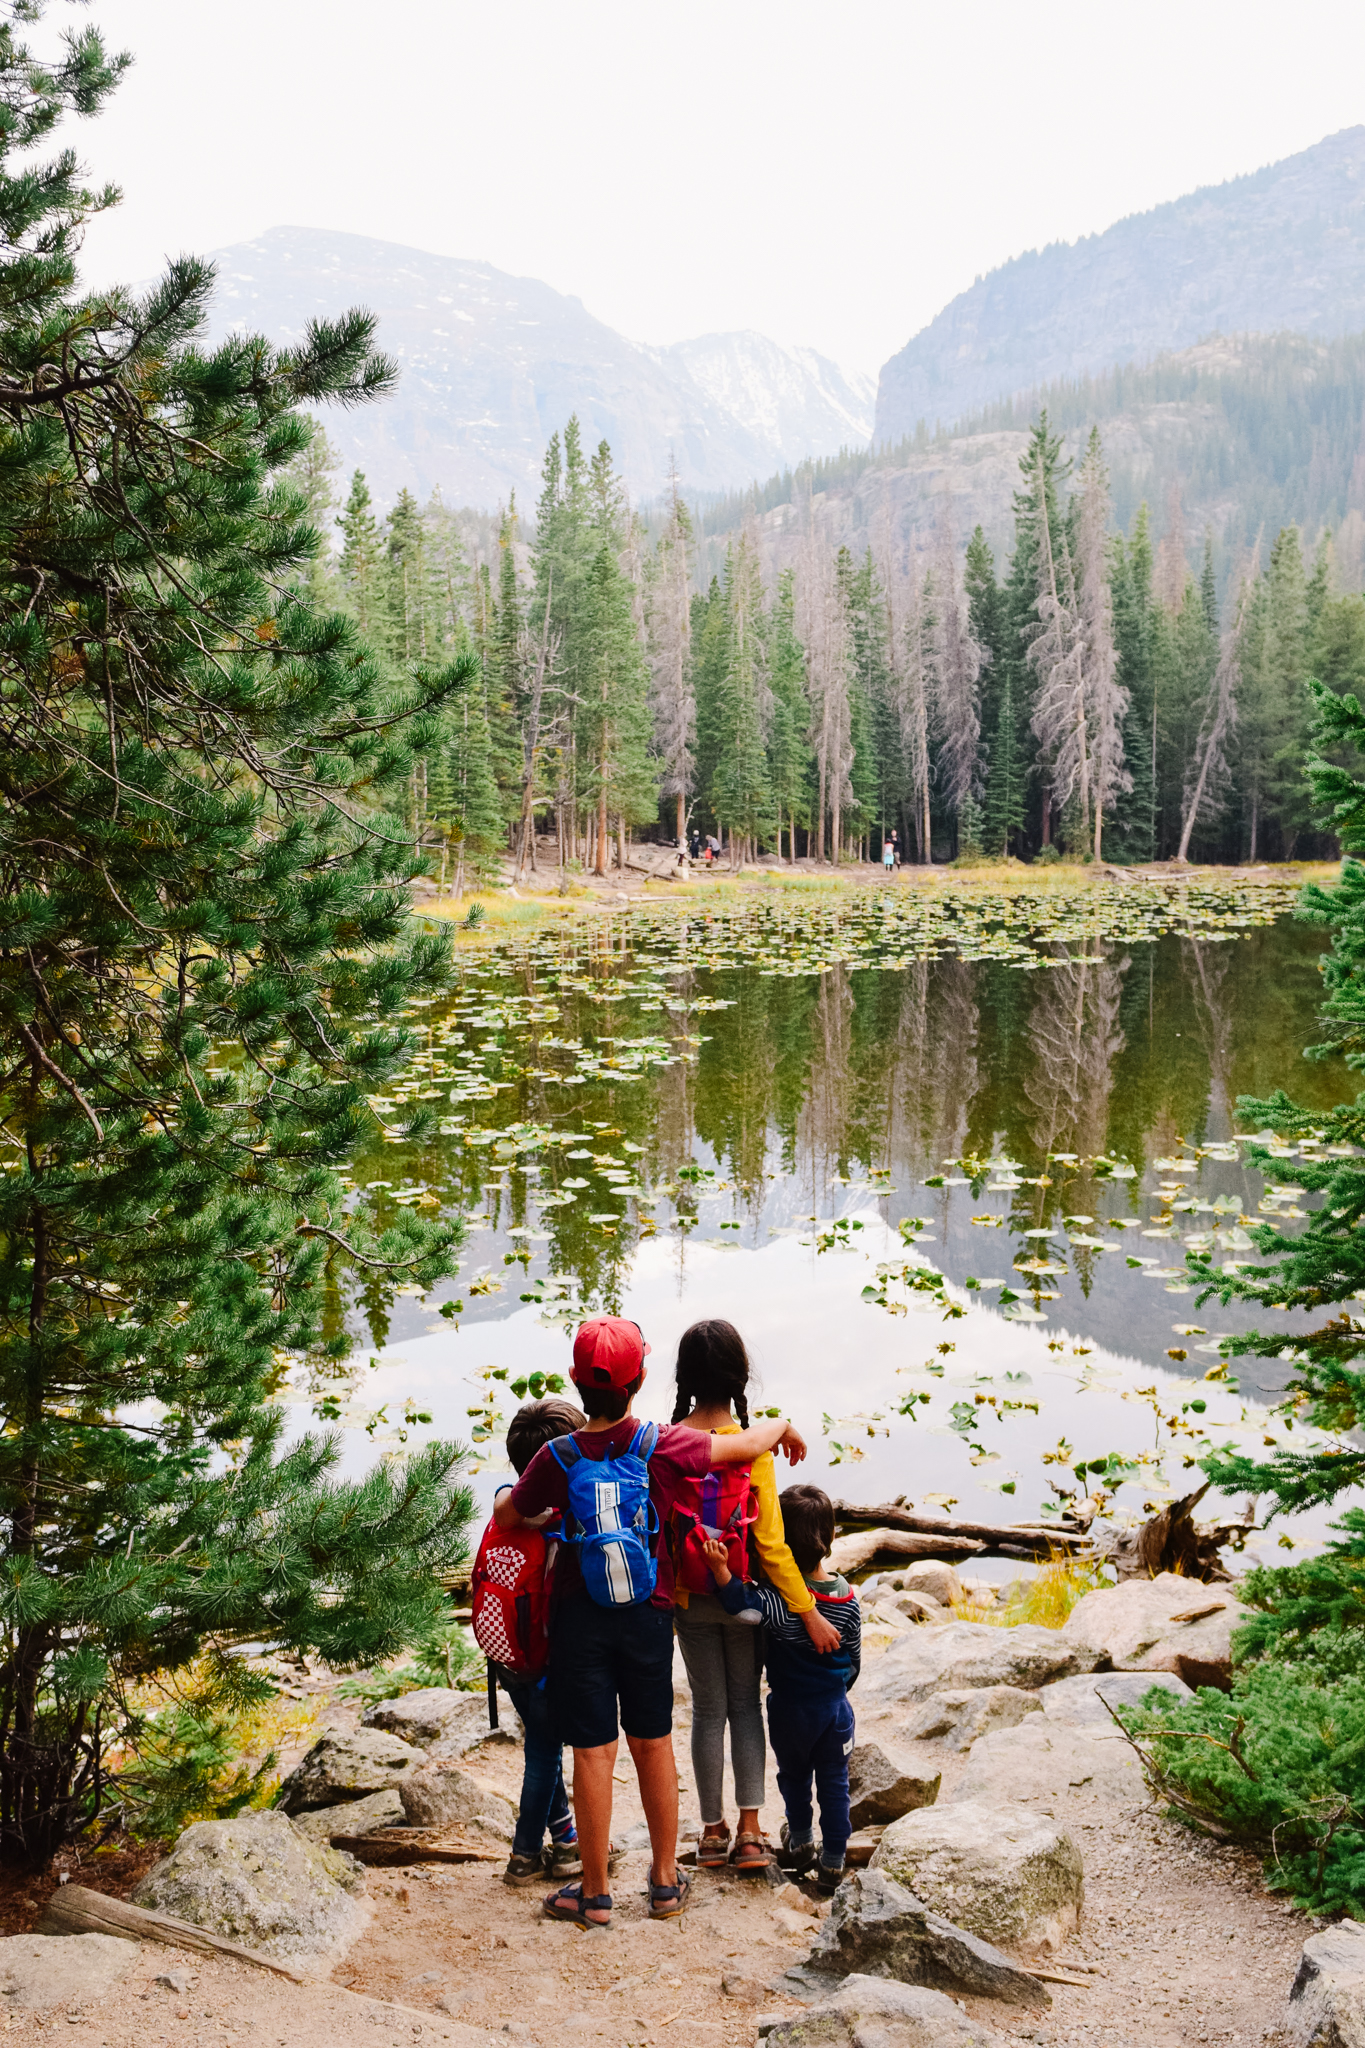 Kids hiking in Rocky Mountain national park